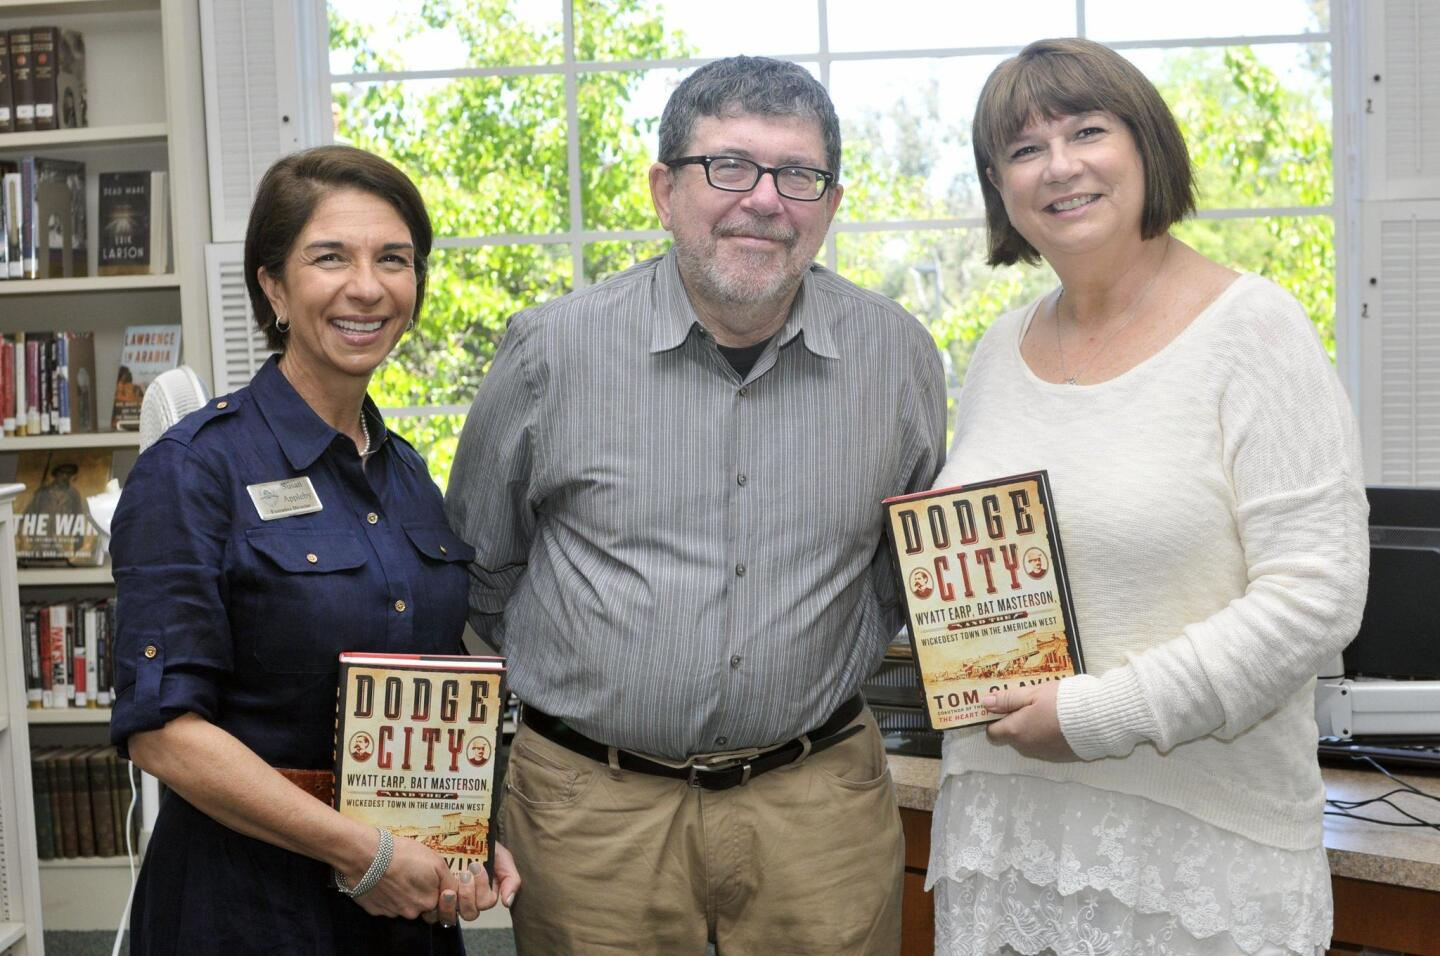 RSF Library Guild Executive Director Susan Appleby, author and guest speaker Tom Clavin, Warwick's Director of Events Julie Slavinsky